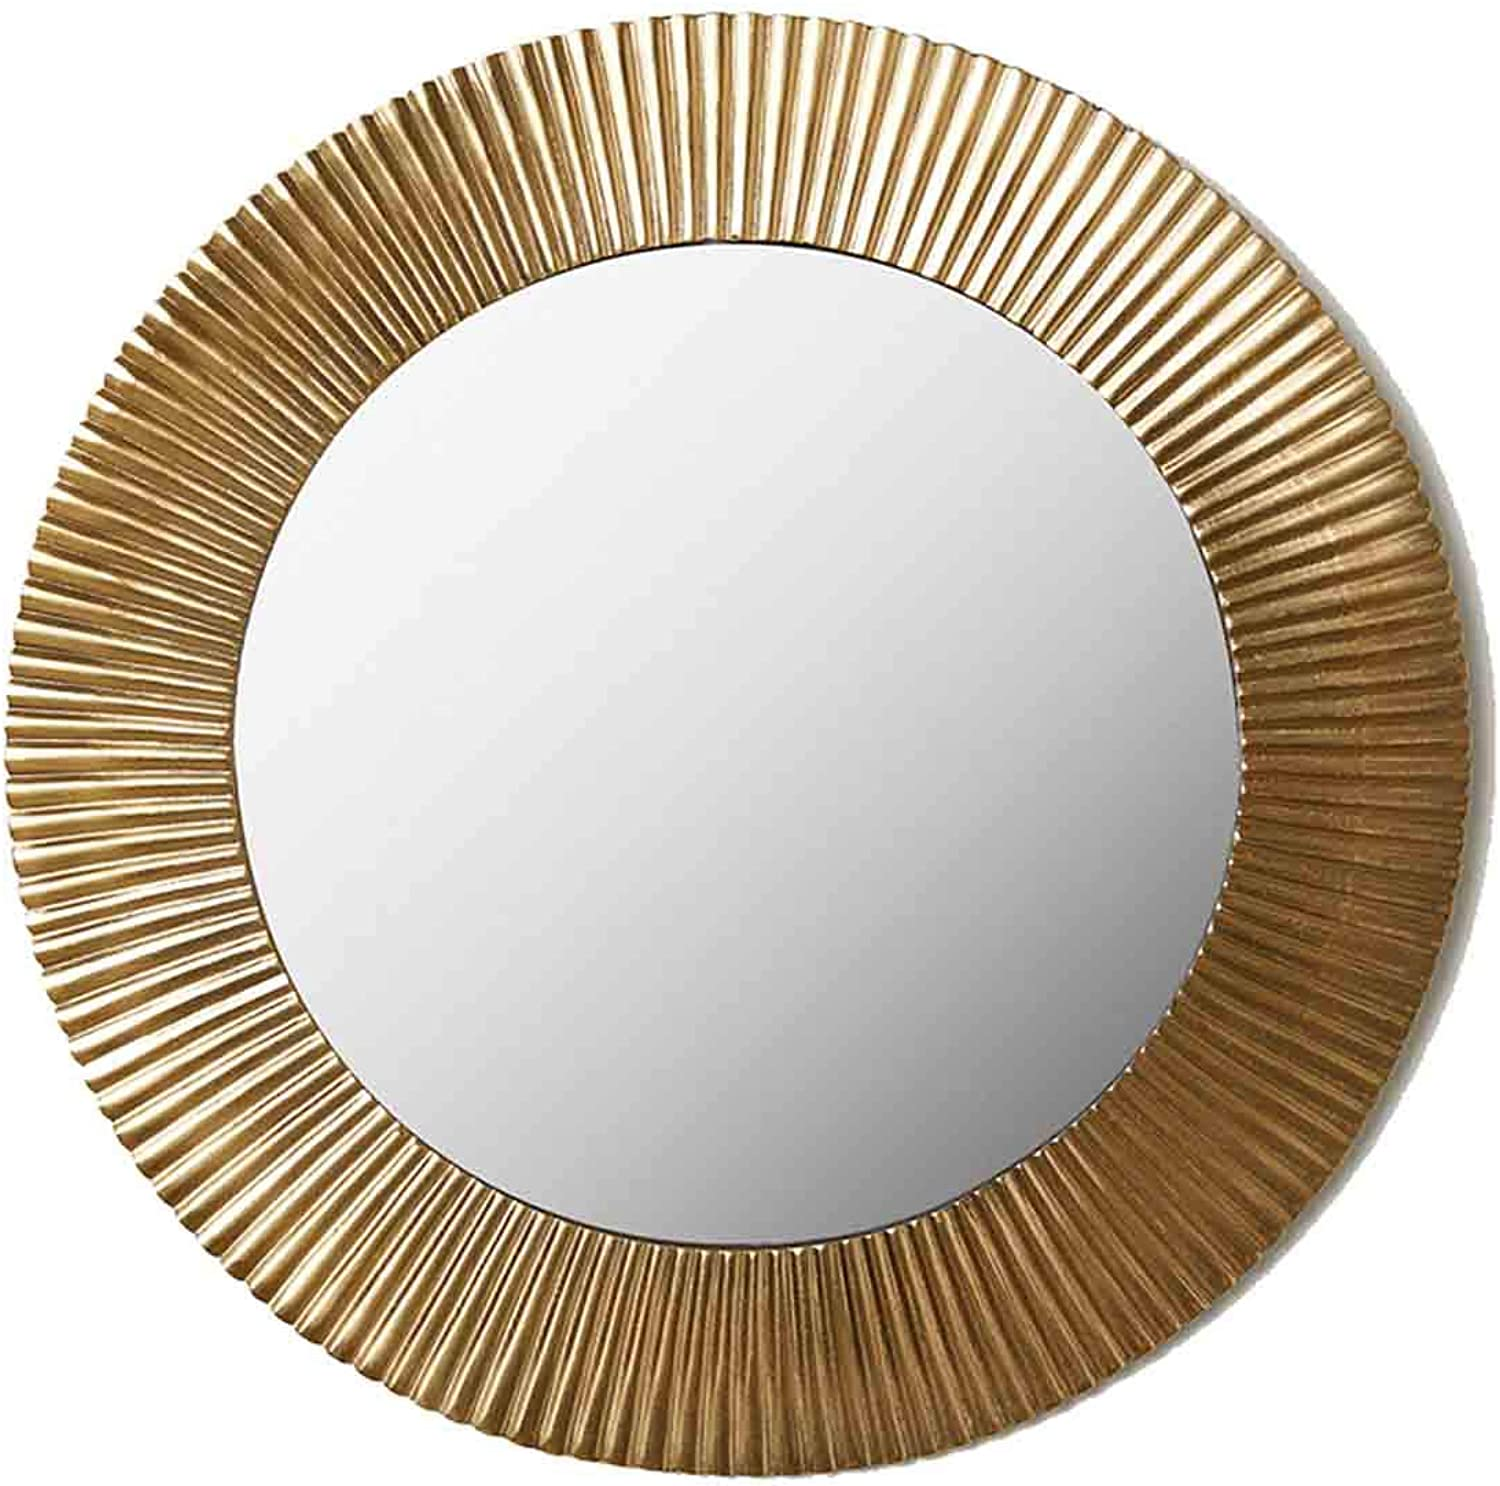 Round Wall Decorative Mirrors with golden Metal Frame Nordic Wall-Mounted Make Up Vanity Mirror for Entryways, Bathroom, Bedroom (35.5cm 14″)